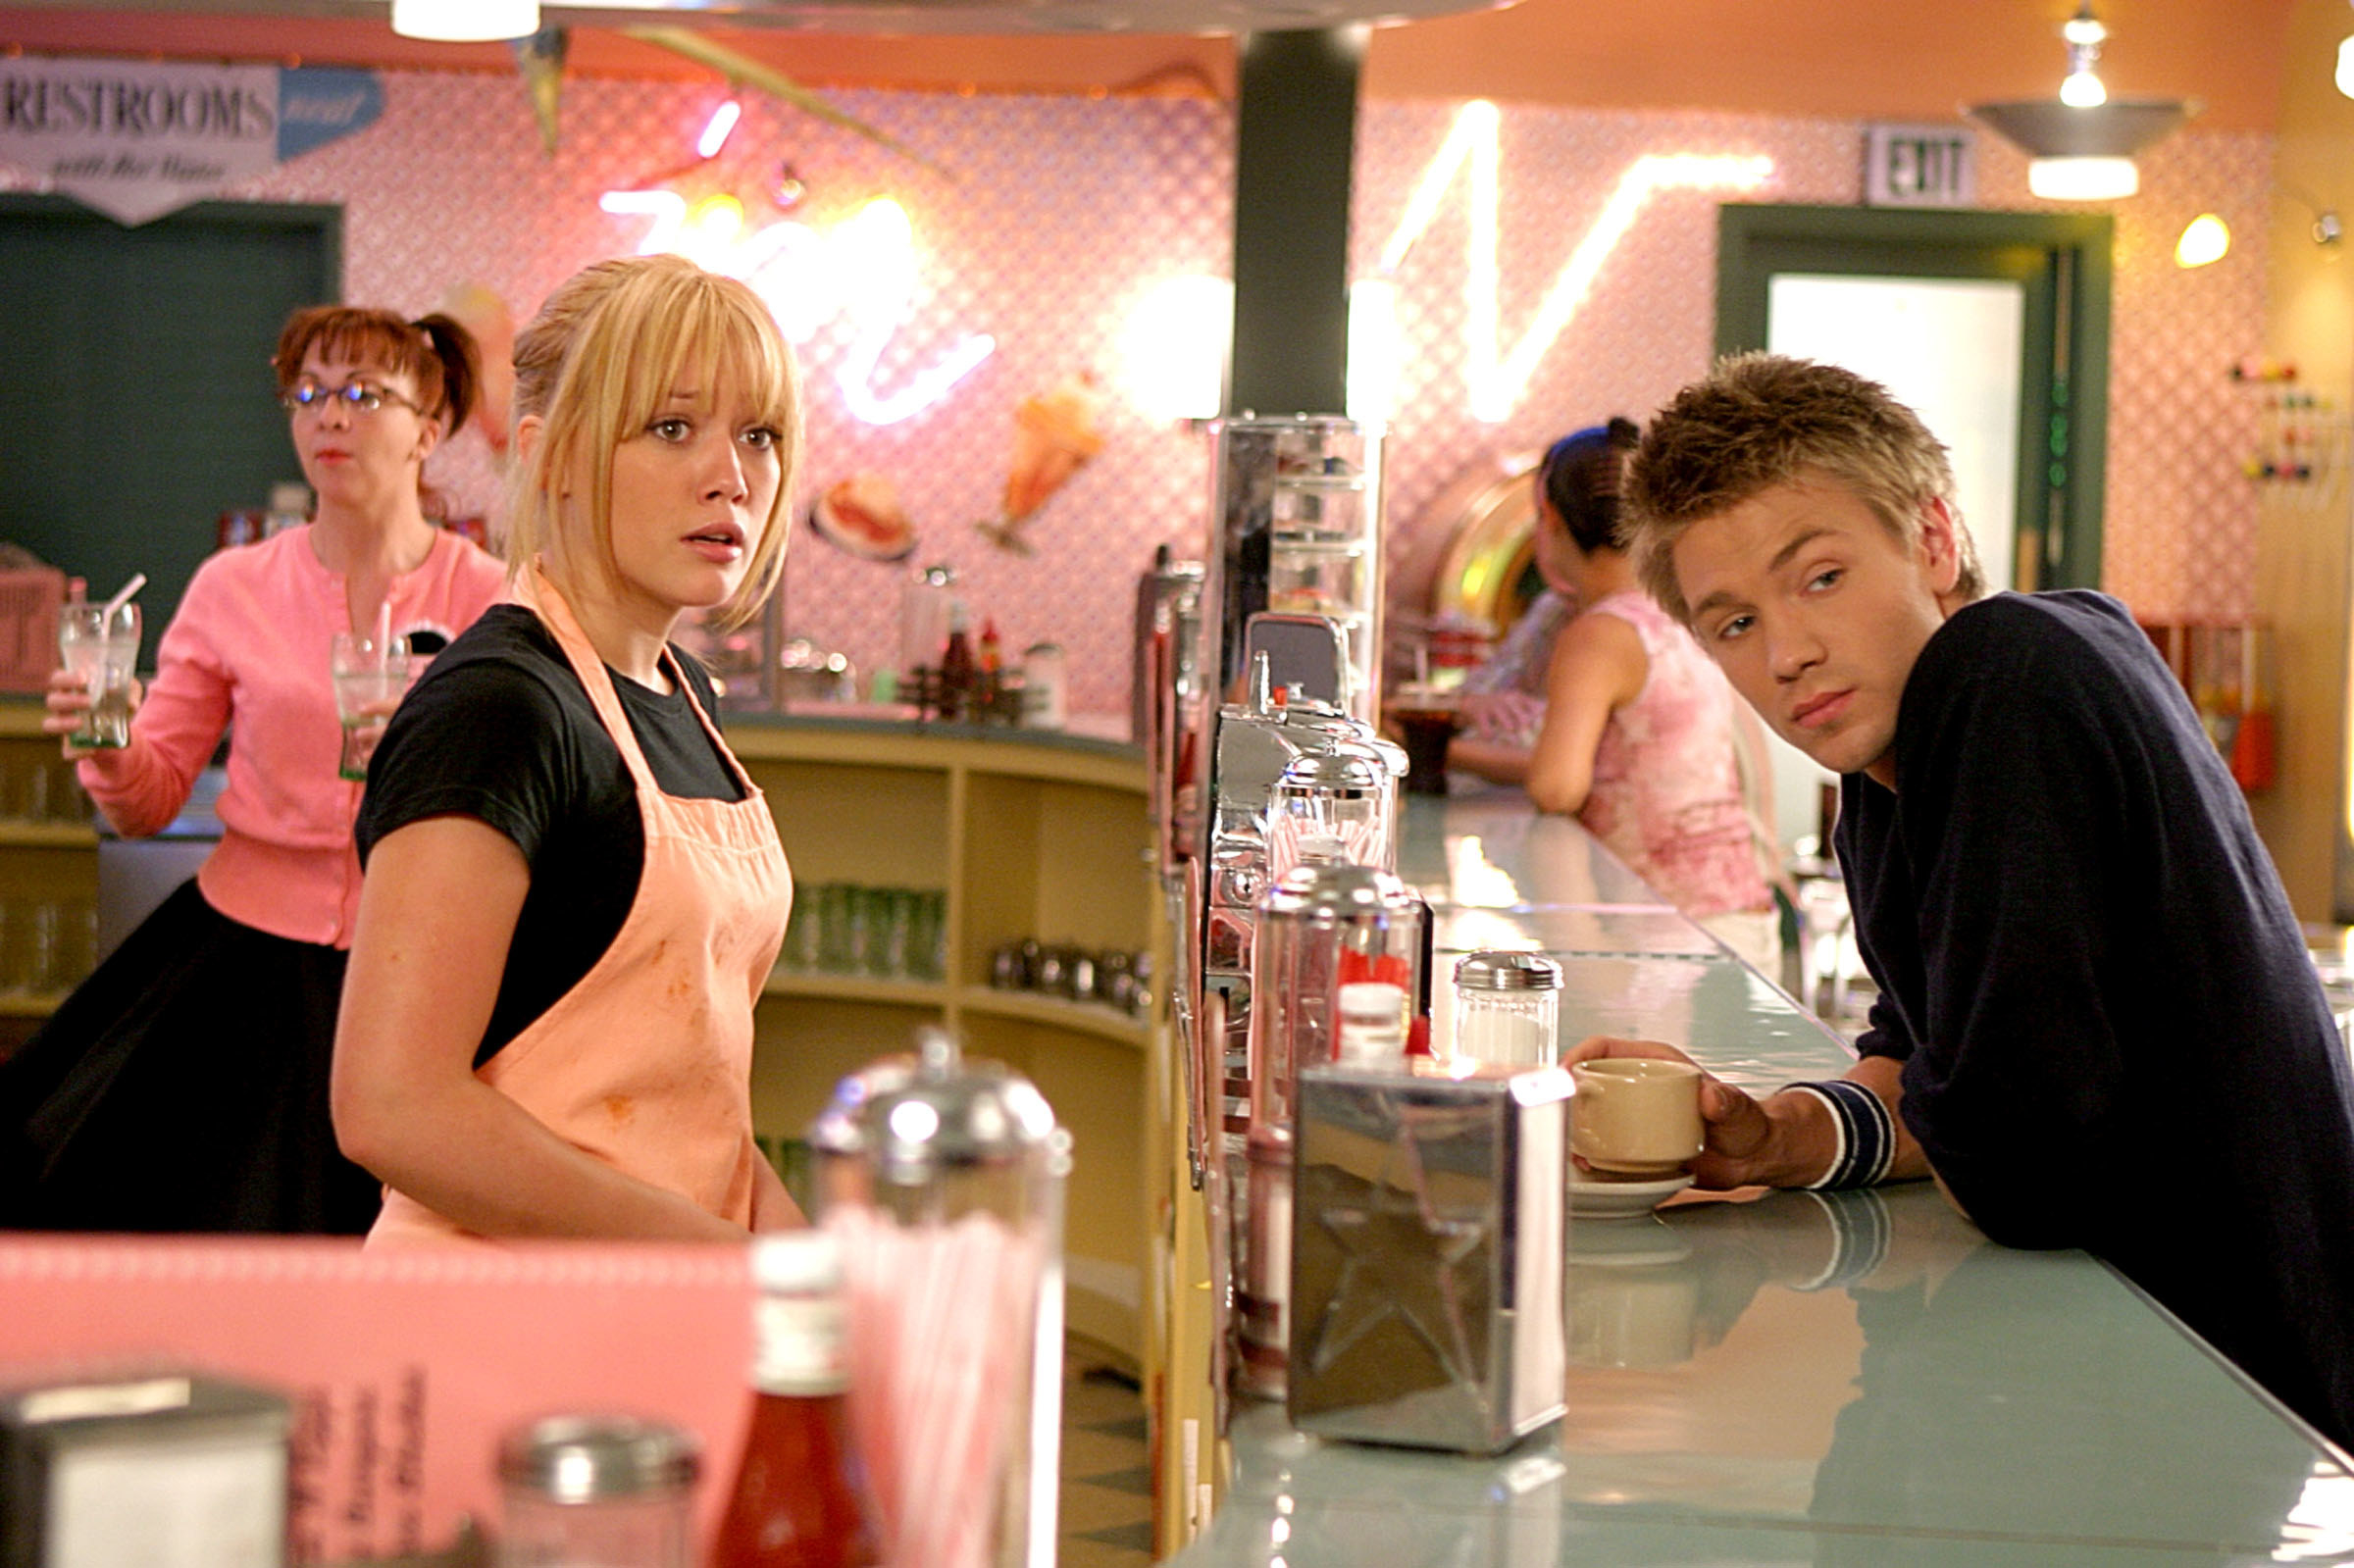 Hilary Duff and Chad Michael Murray in the movie a cinderella story